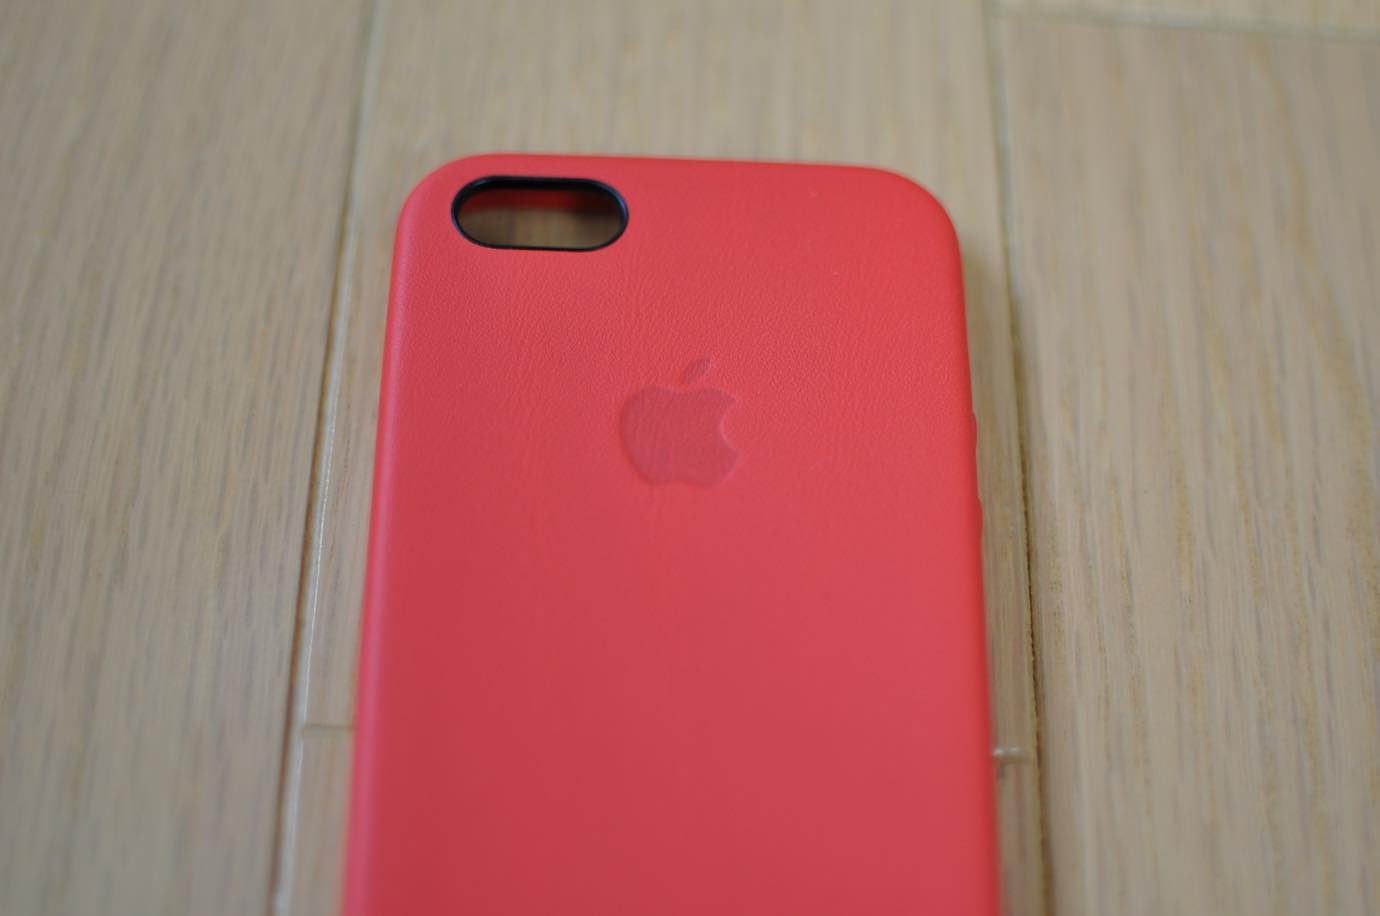 IPhone 5s Case   PRODUCT RED 02 20141215 214945